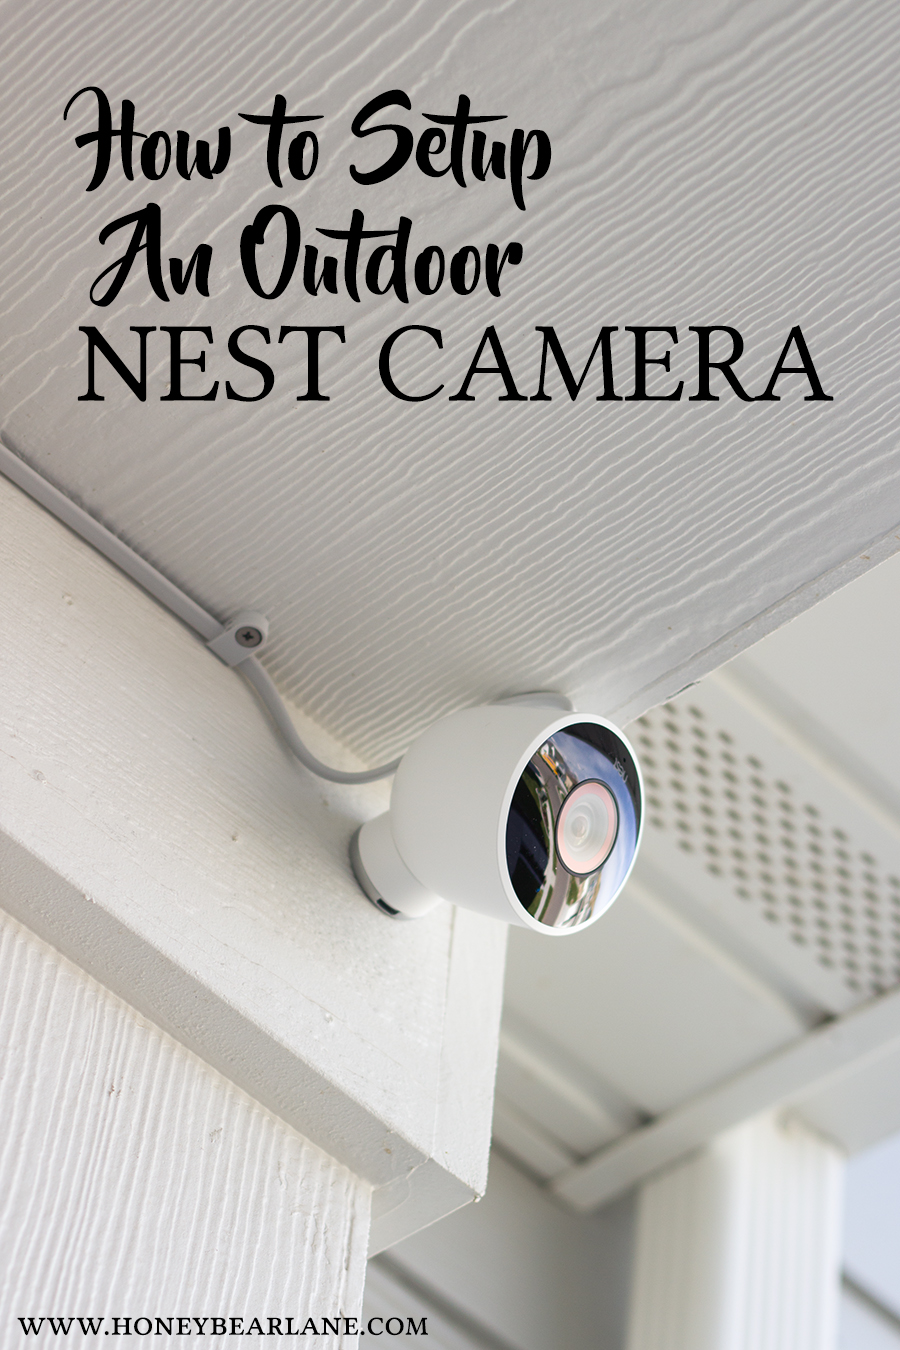 Smart Home Series How To Setup An Outdoor Nest Camera. Cheapest Online Universities. Search Engine Optimization Company Reviews. Recover Data From Failed Hard Drive. What Is Doctor Of Physical Therapy. Yeast Infection Back Pain Crime Scene Analyst. Private Wealth Management Software. Best International Voip Fleet One Credit Card. Converting Electric Heat To Gas